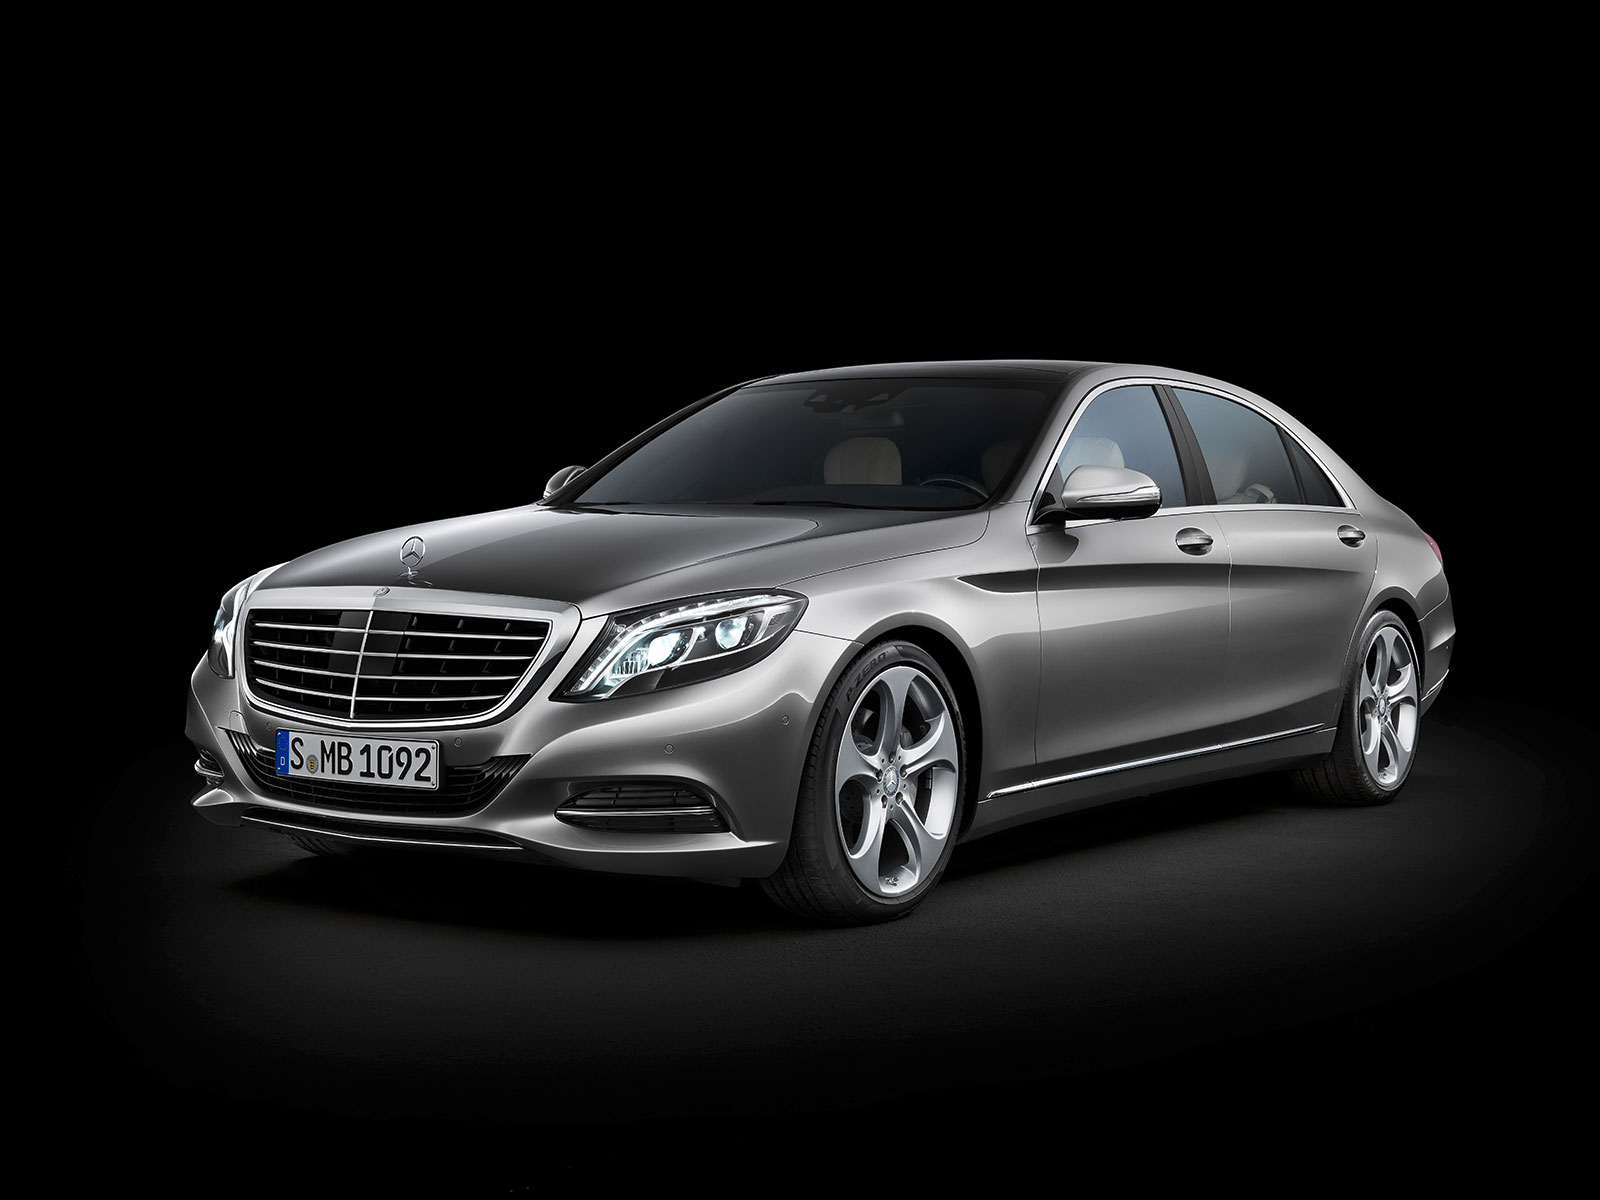 mercedes s klasse s 500 plug in hybrid verbrauch mit 3 vor dem komma. Black Bedroom Furniture Sets. Home Design Ideas